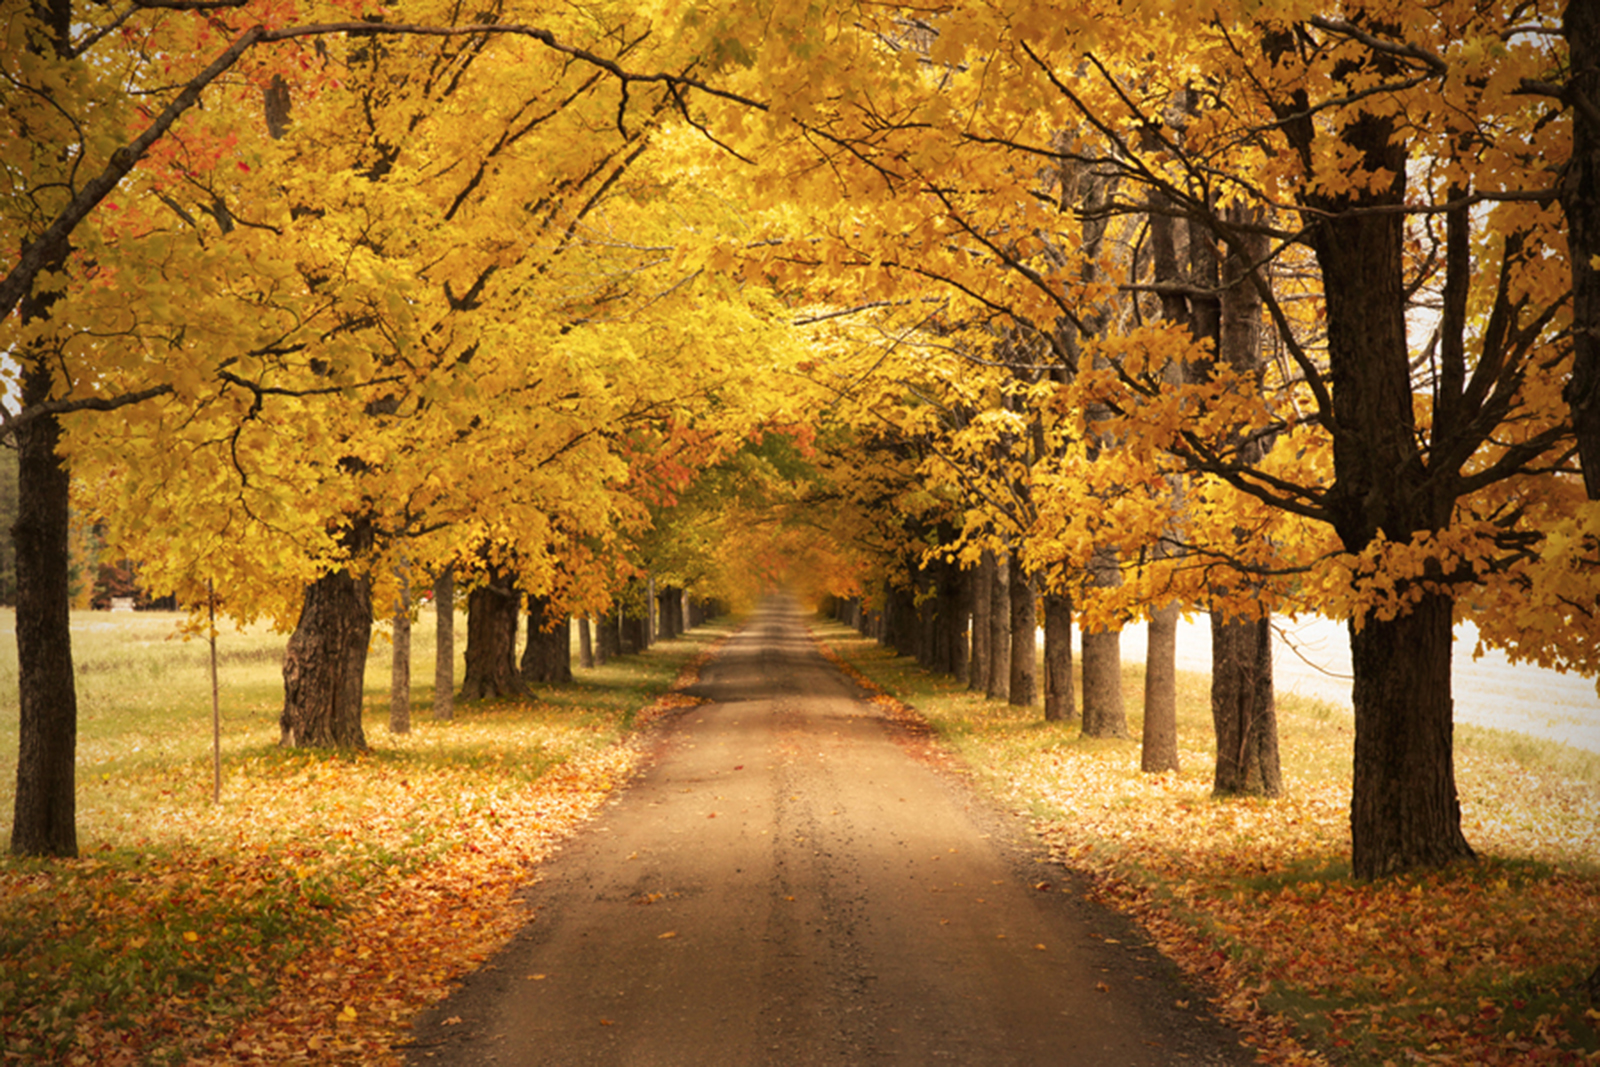 fall foliage driveway autumn road in Nova scotia by Heather Rushton